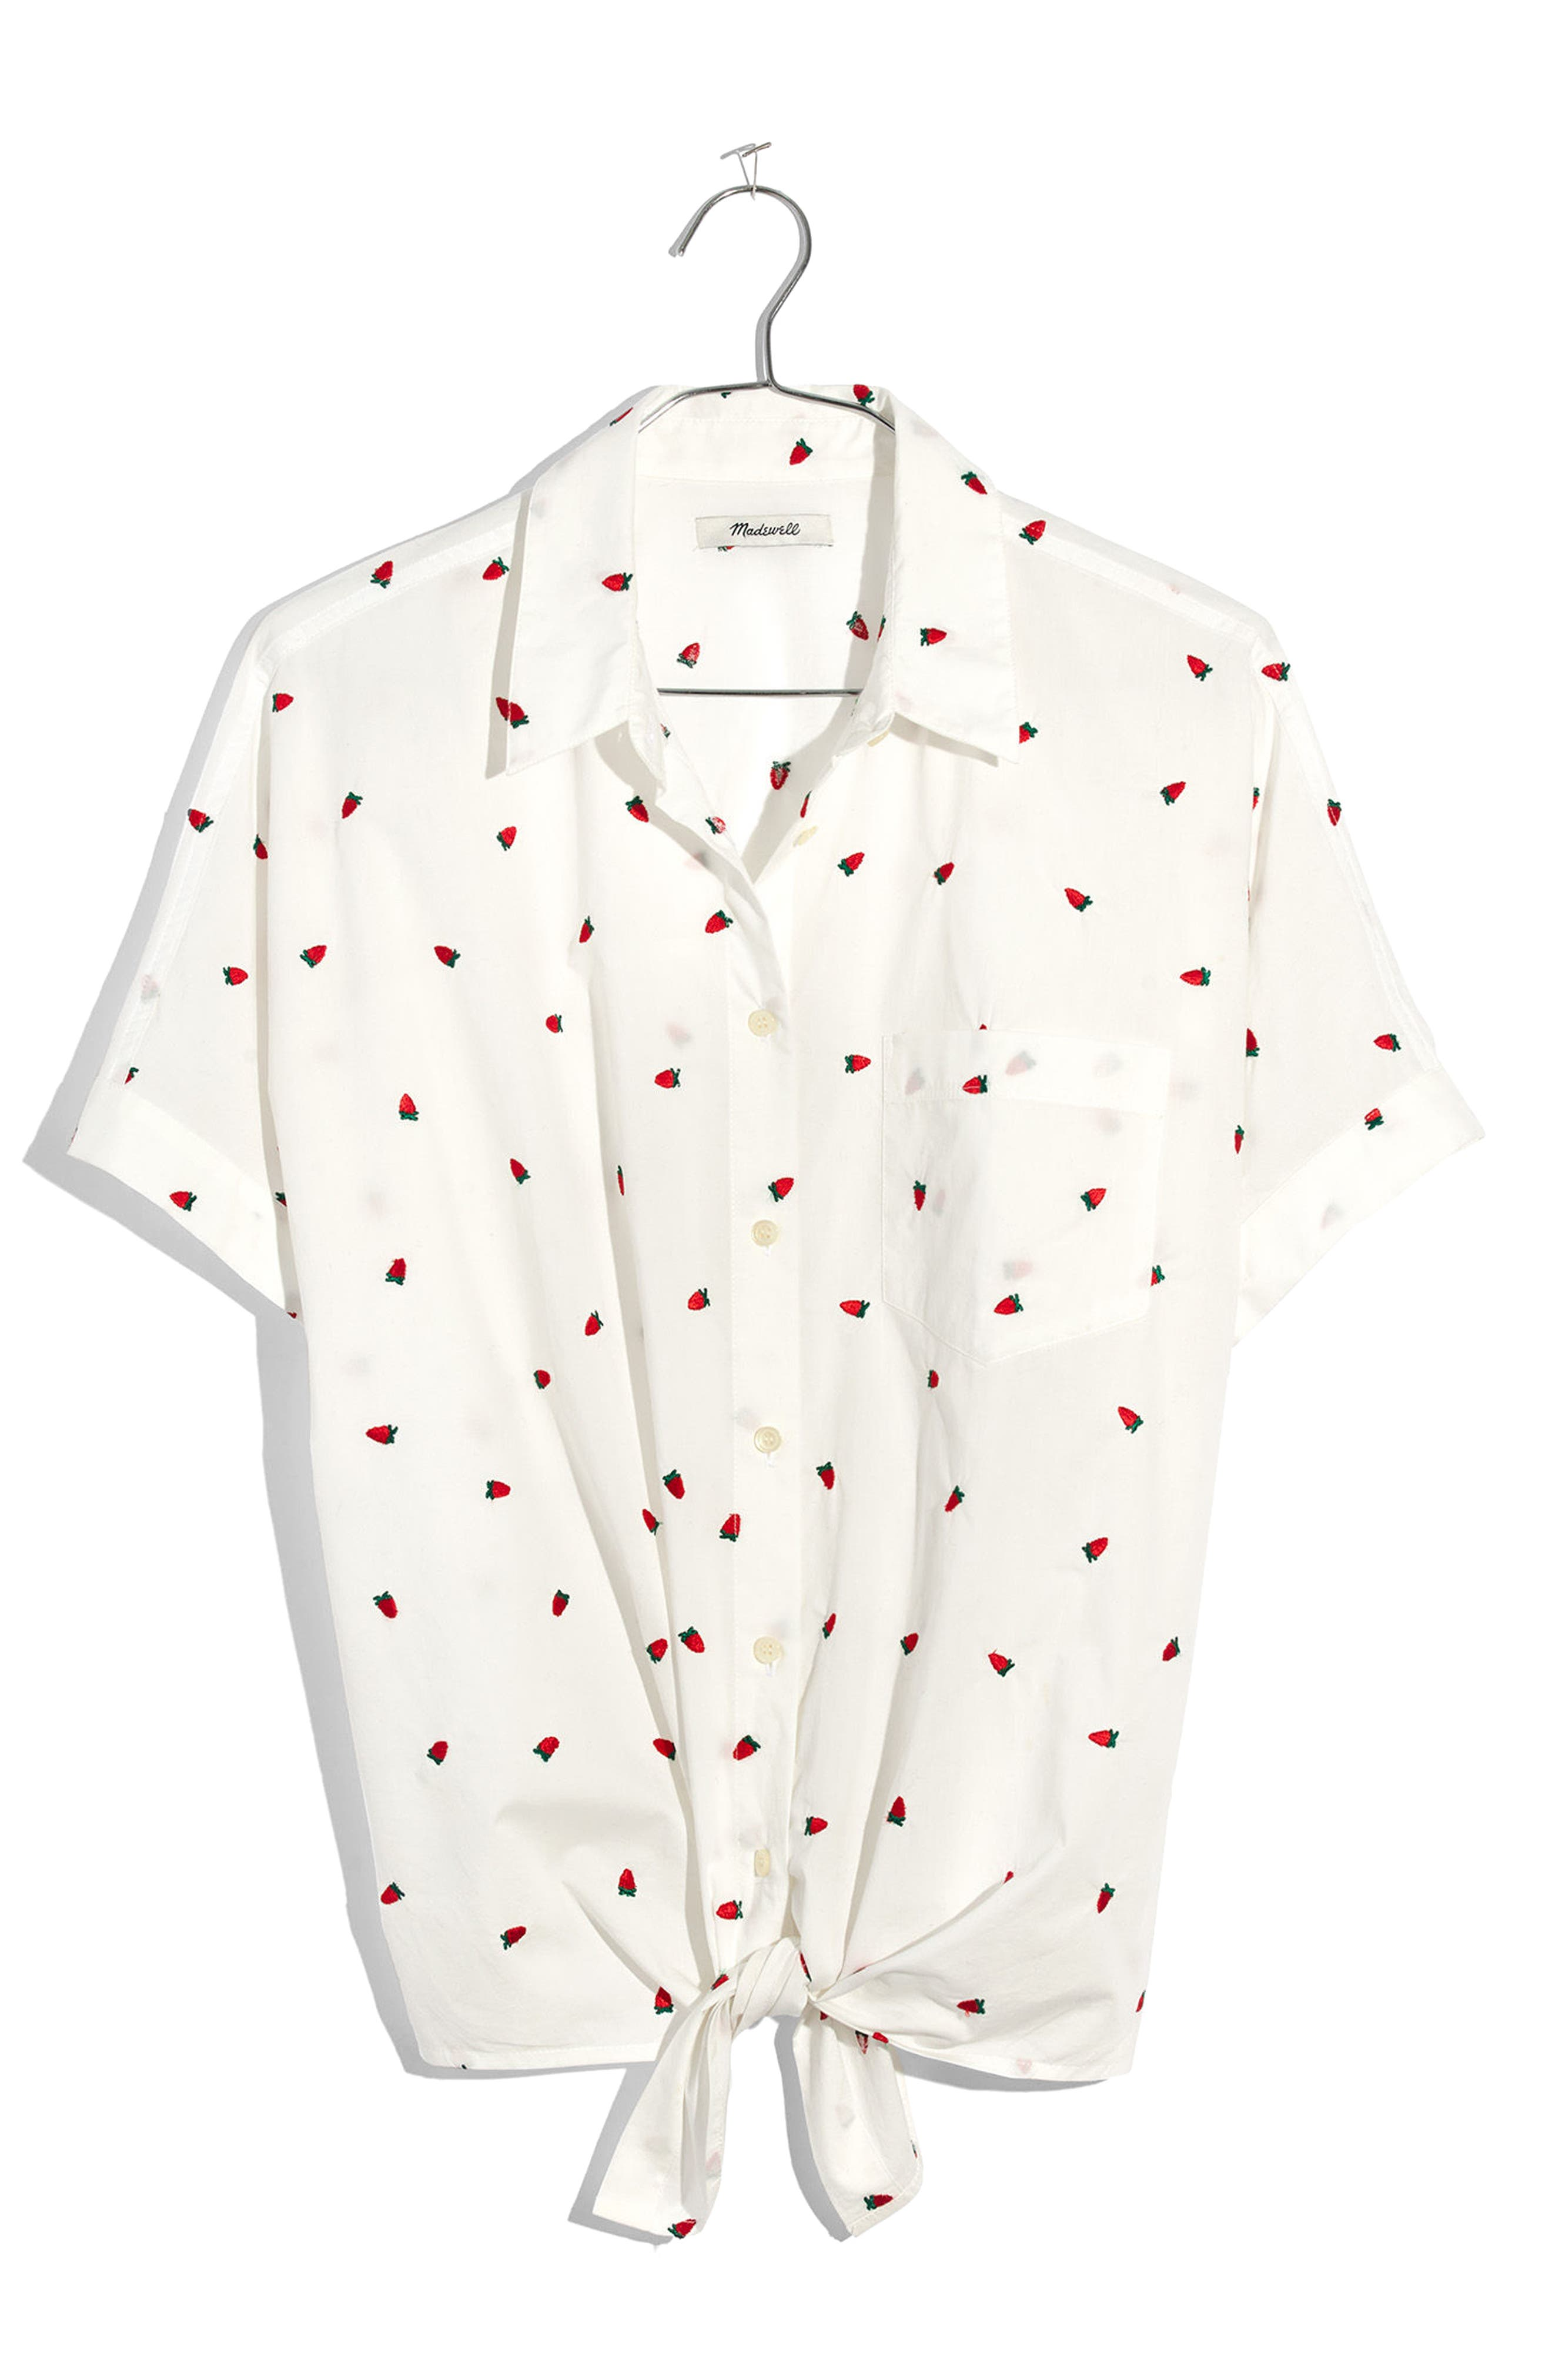 MADEWELL,                             Strawberry Embroidered Tie Front Shirt,                             Alternate thumbnail 4, color,                             100